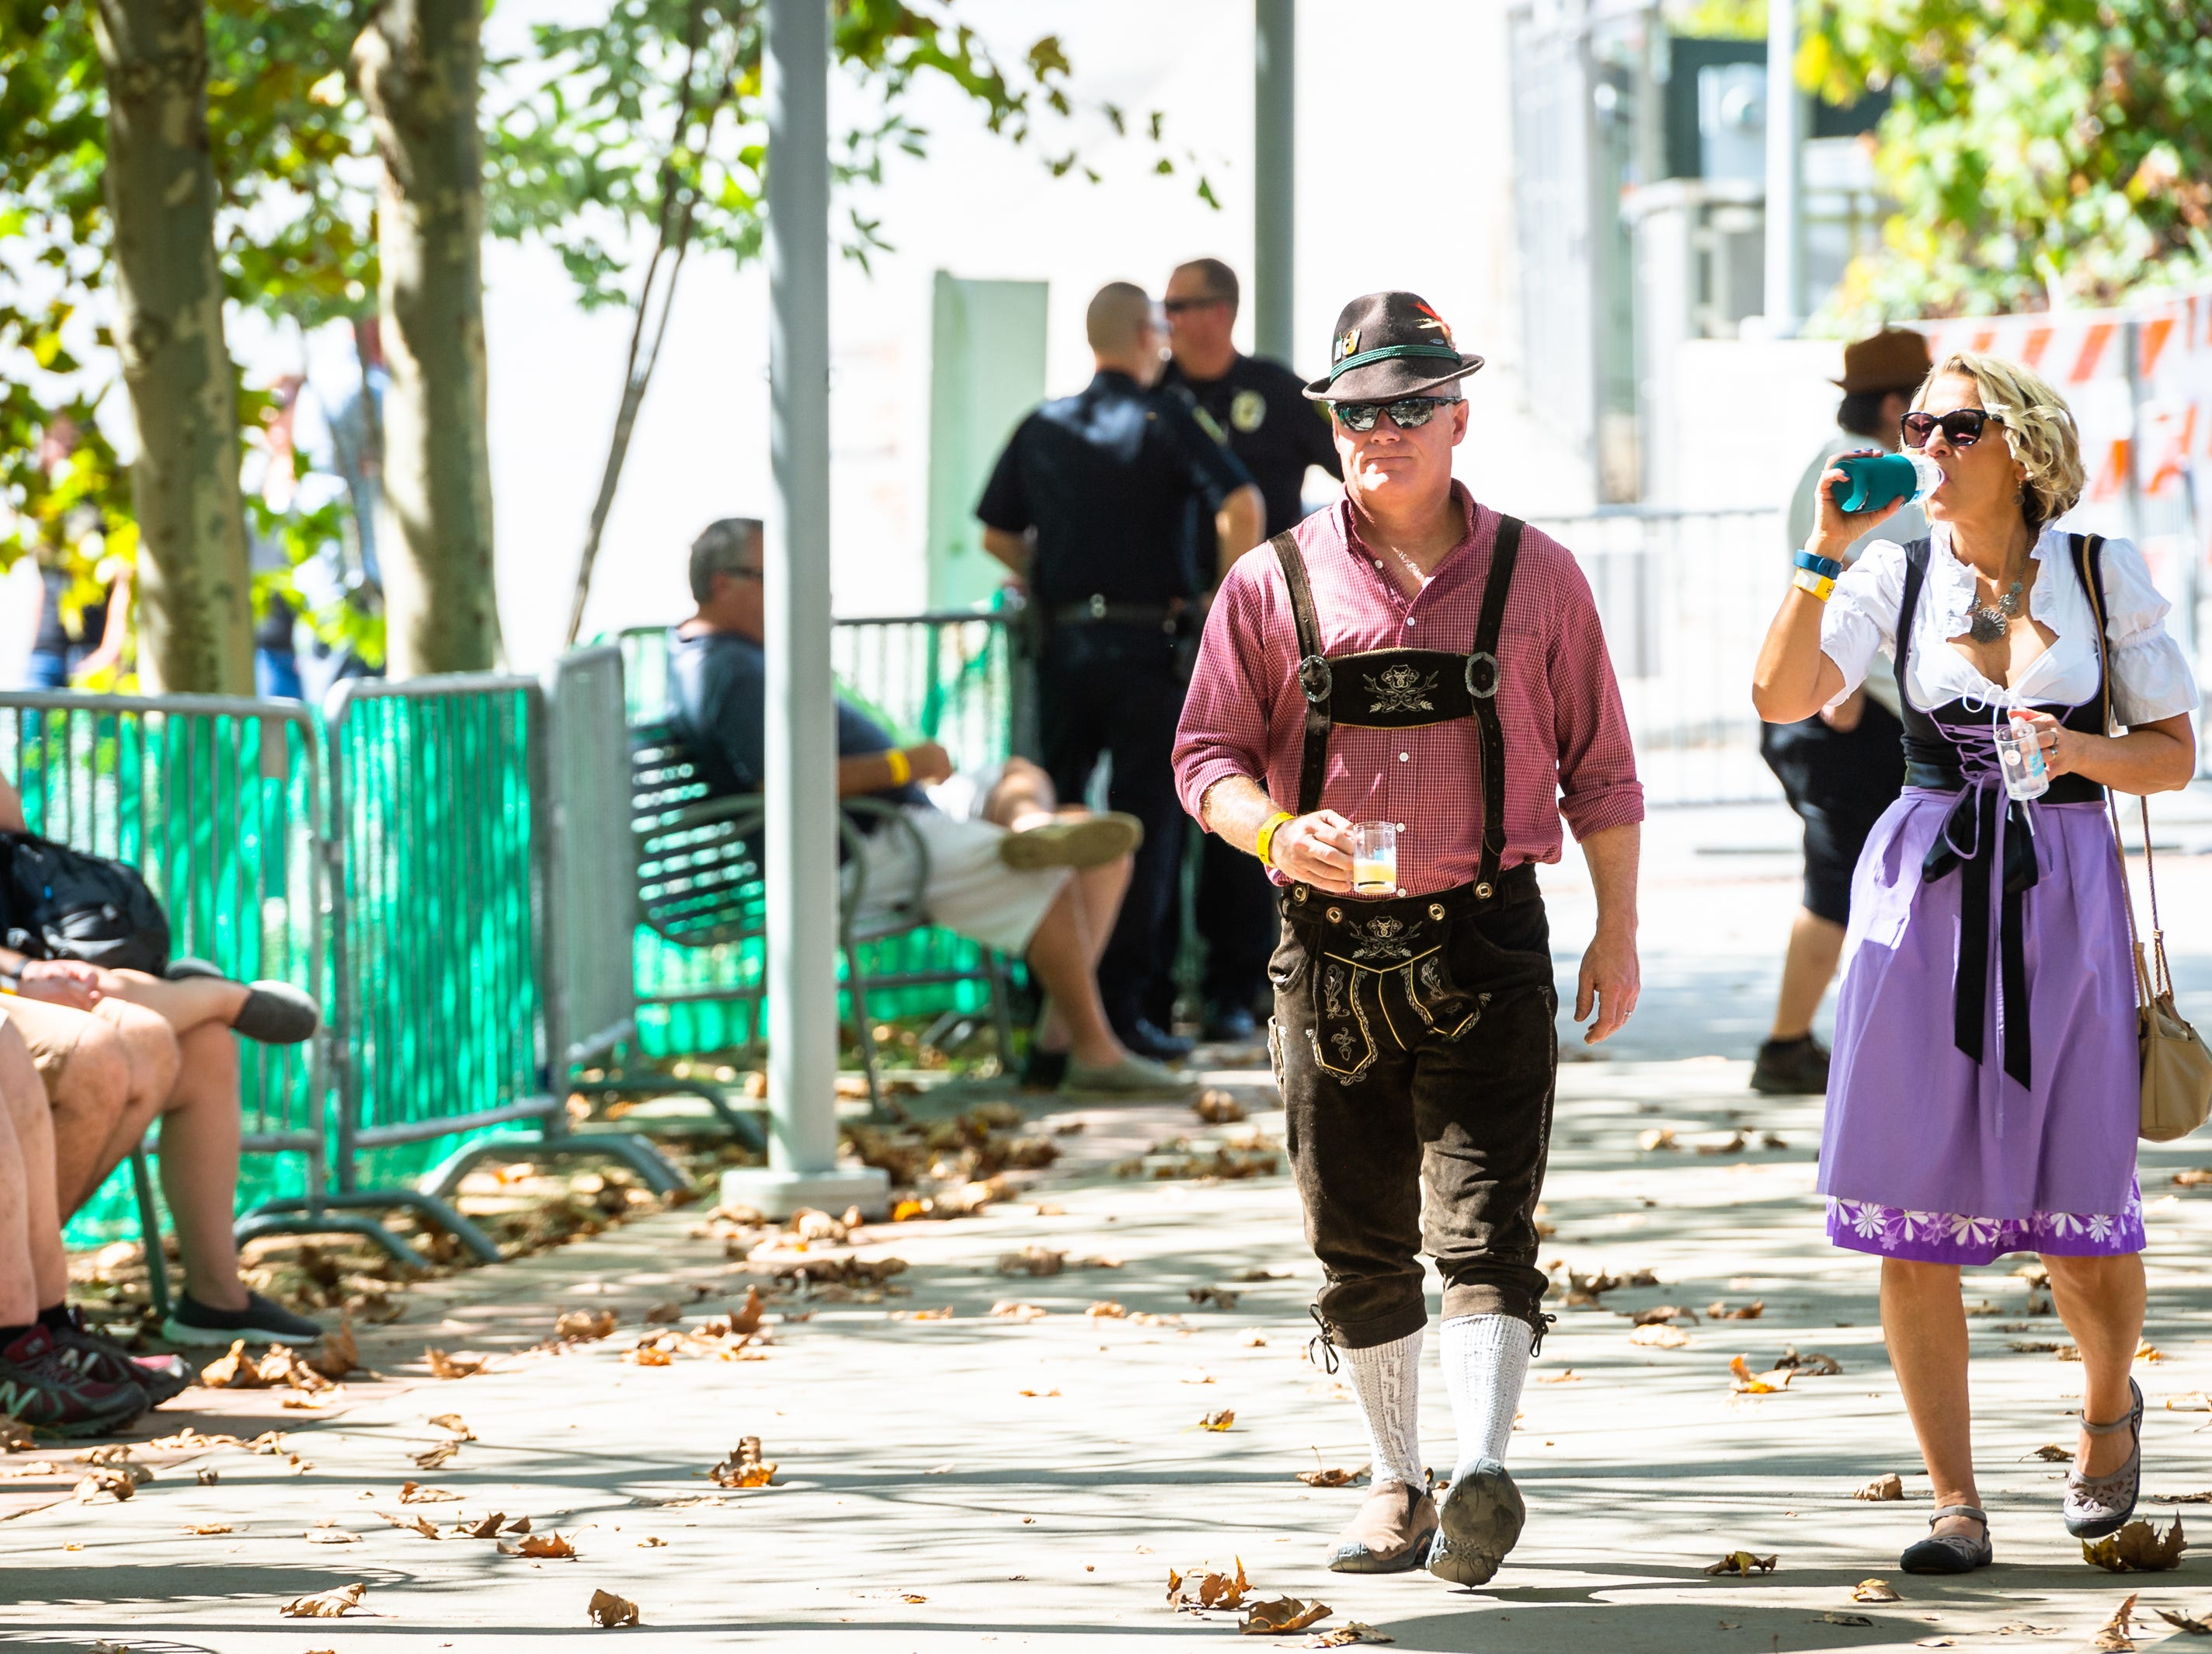 The 10th annual Asheville Oktoberfest took place at Pack Square Park Saturday afternoon featuring polka music from Mountain Top Polka Band as well as beer, wine, cider and craft beverage sampling, Oct. 6, 2018.